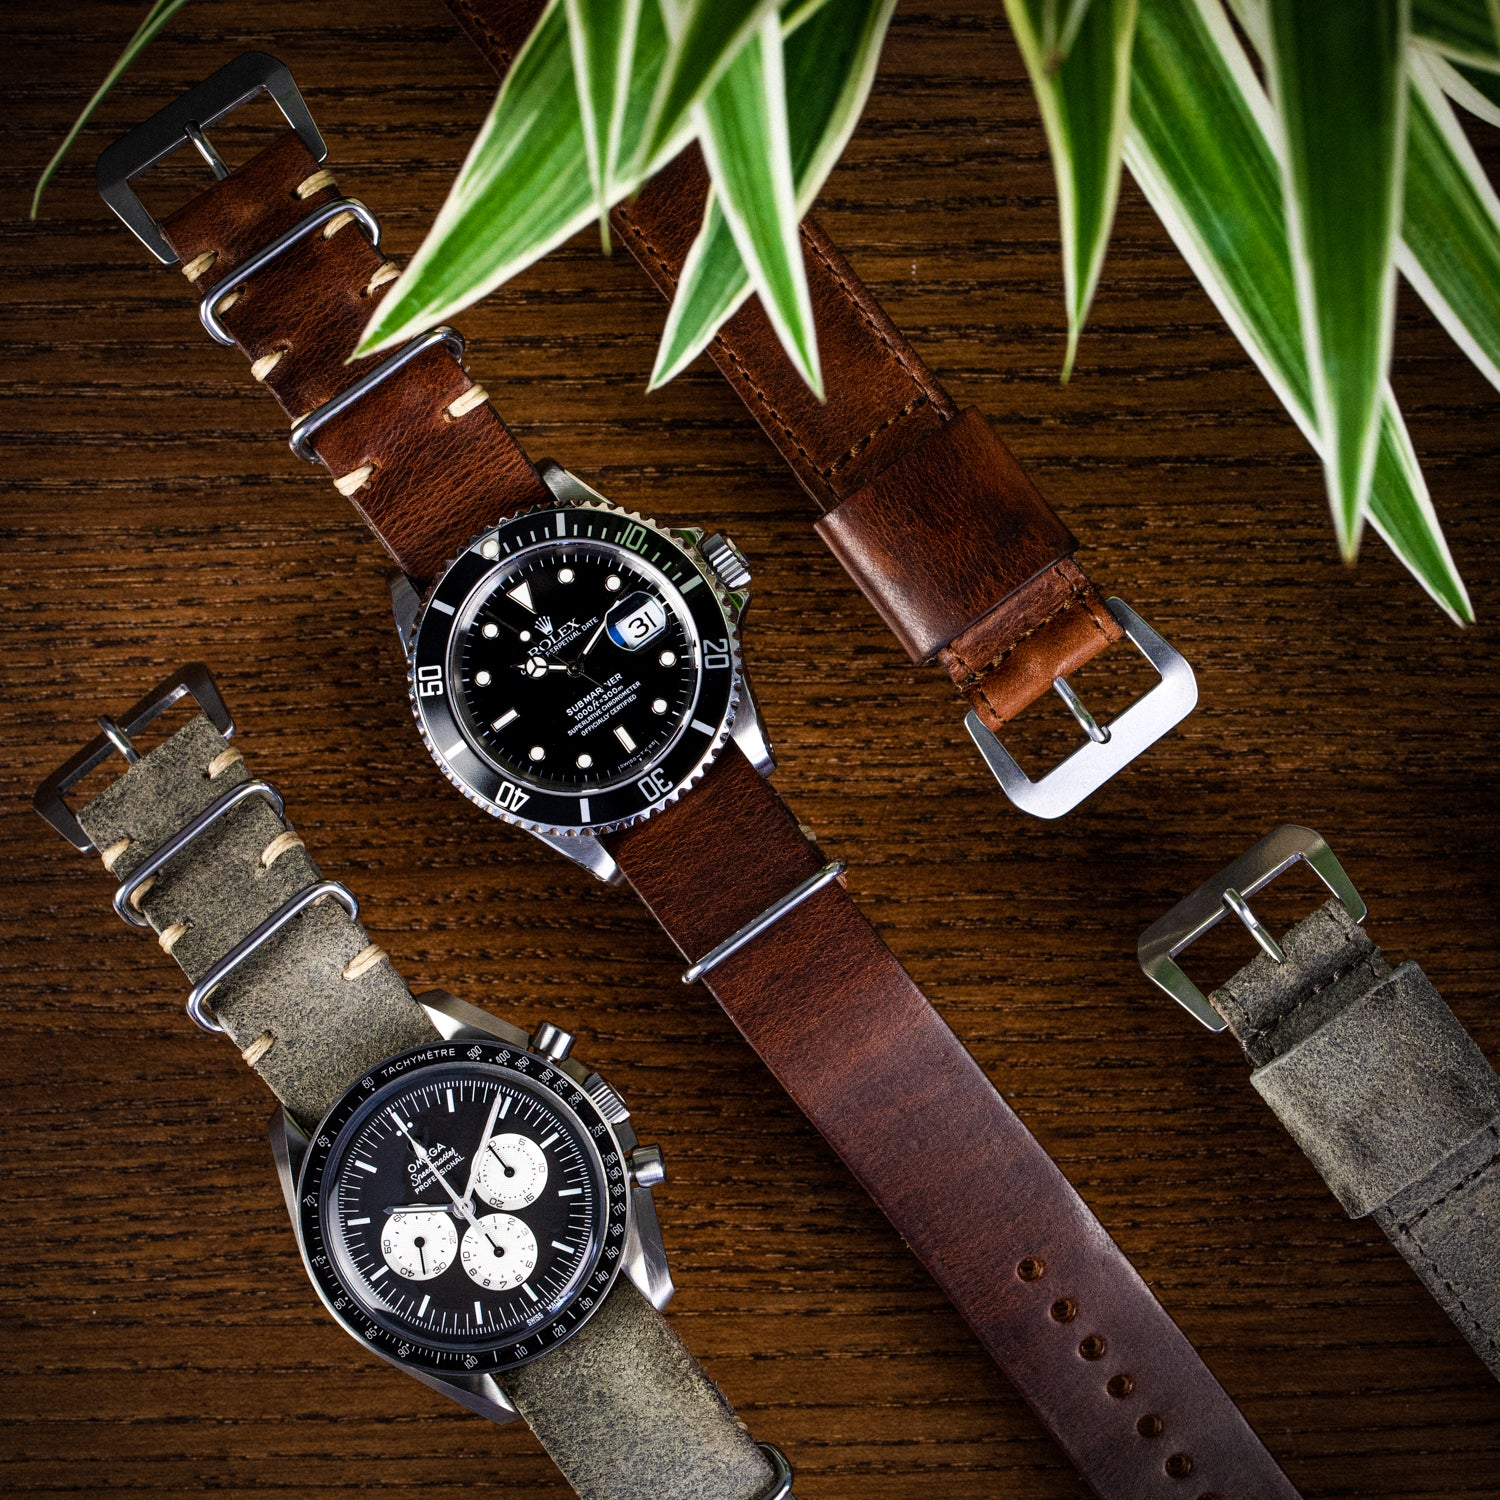 Leather Nato straps by Jean Paul Menicucci